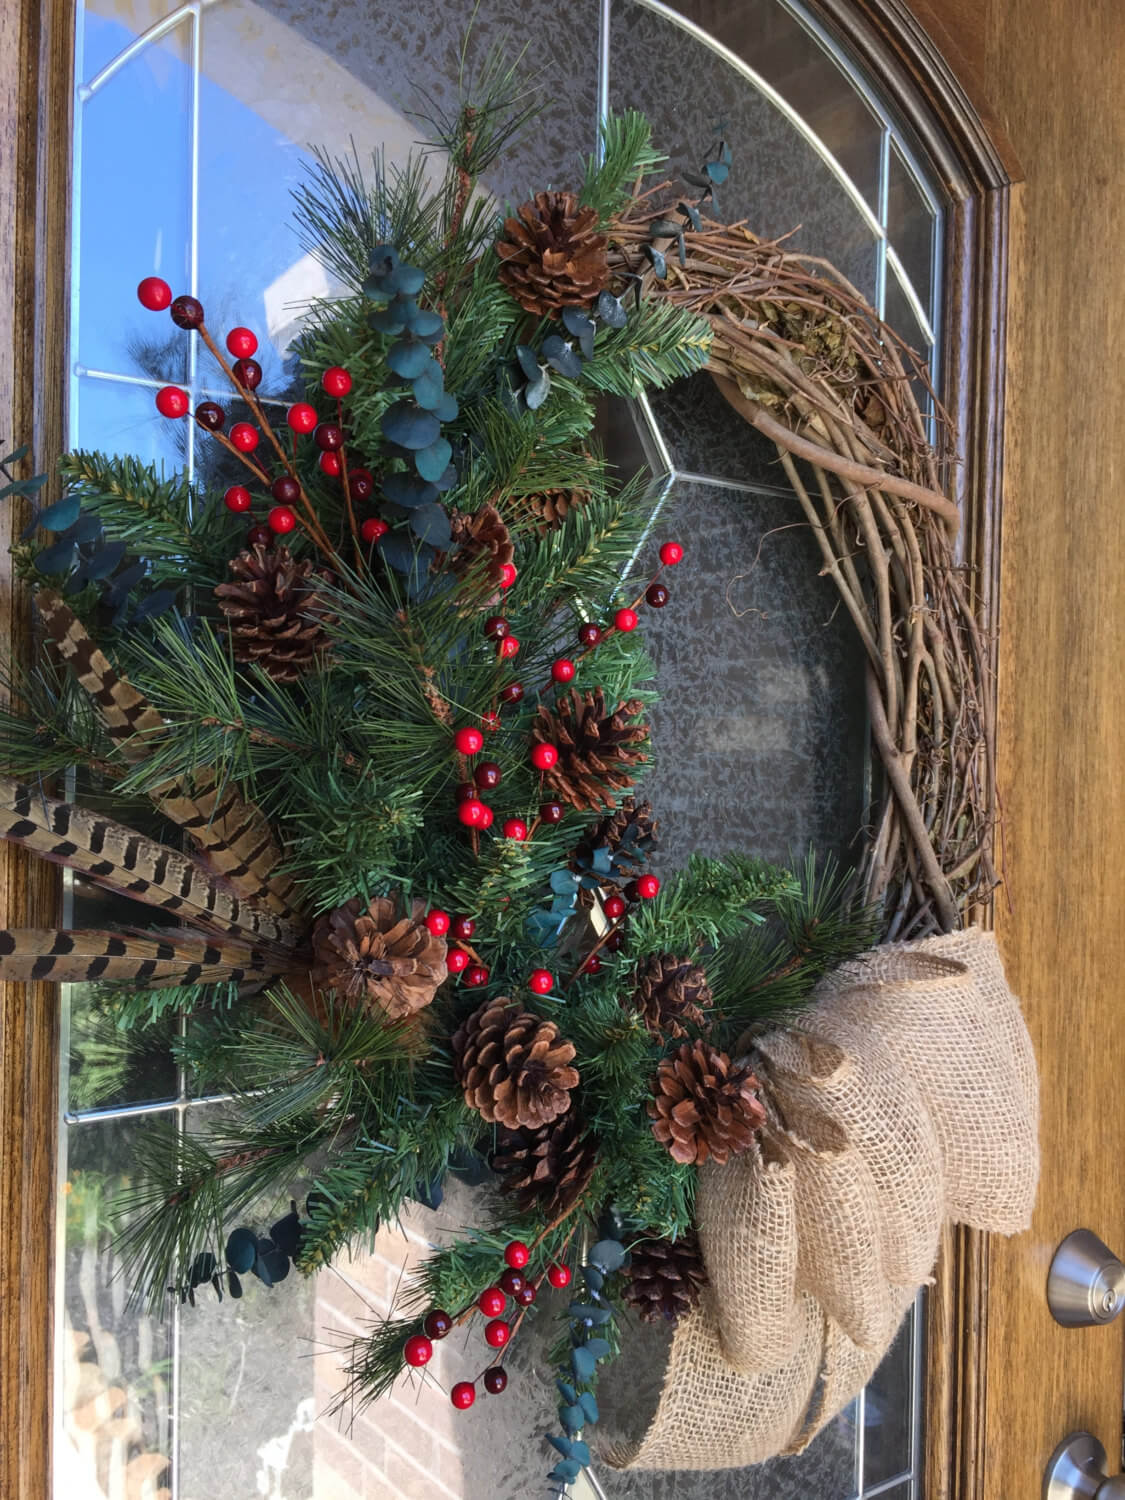 Christmas wreath in traditional colors